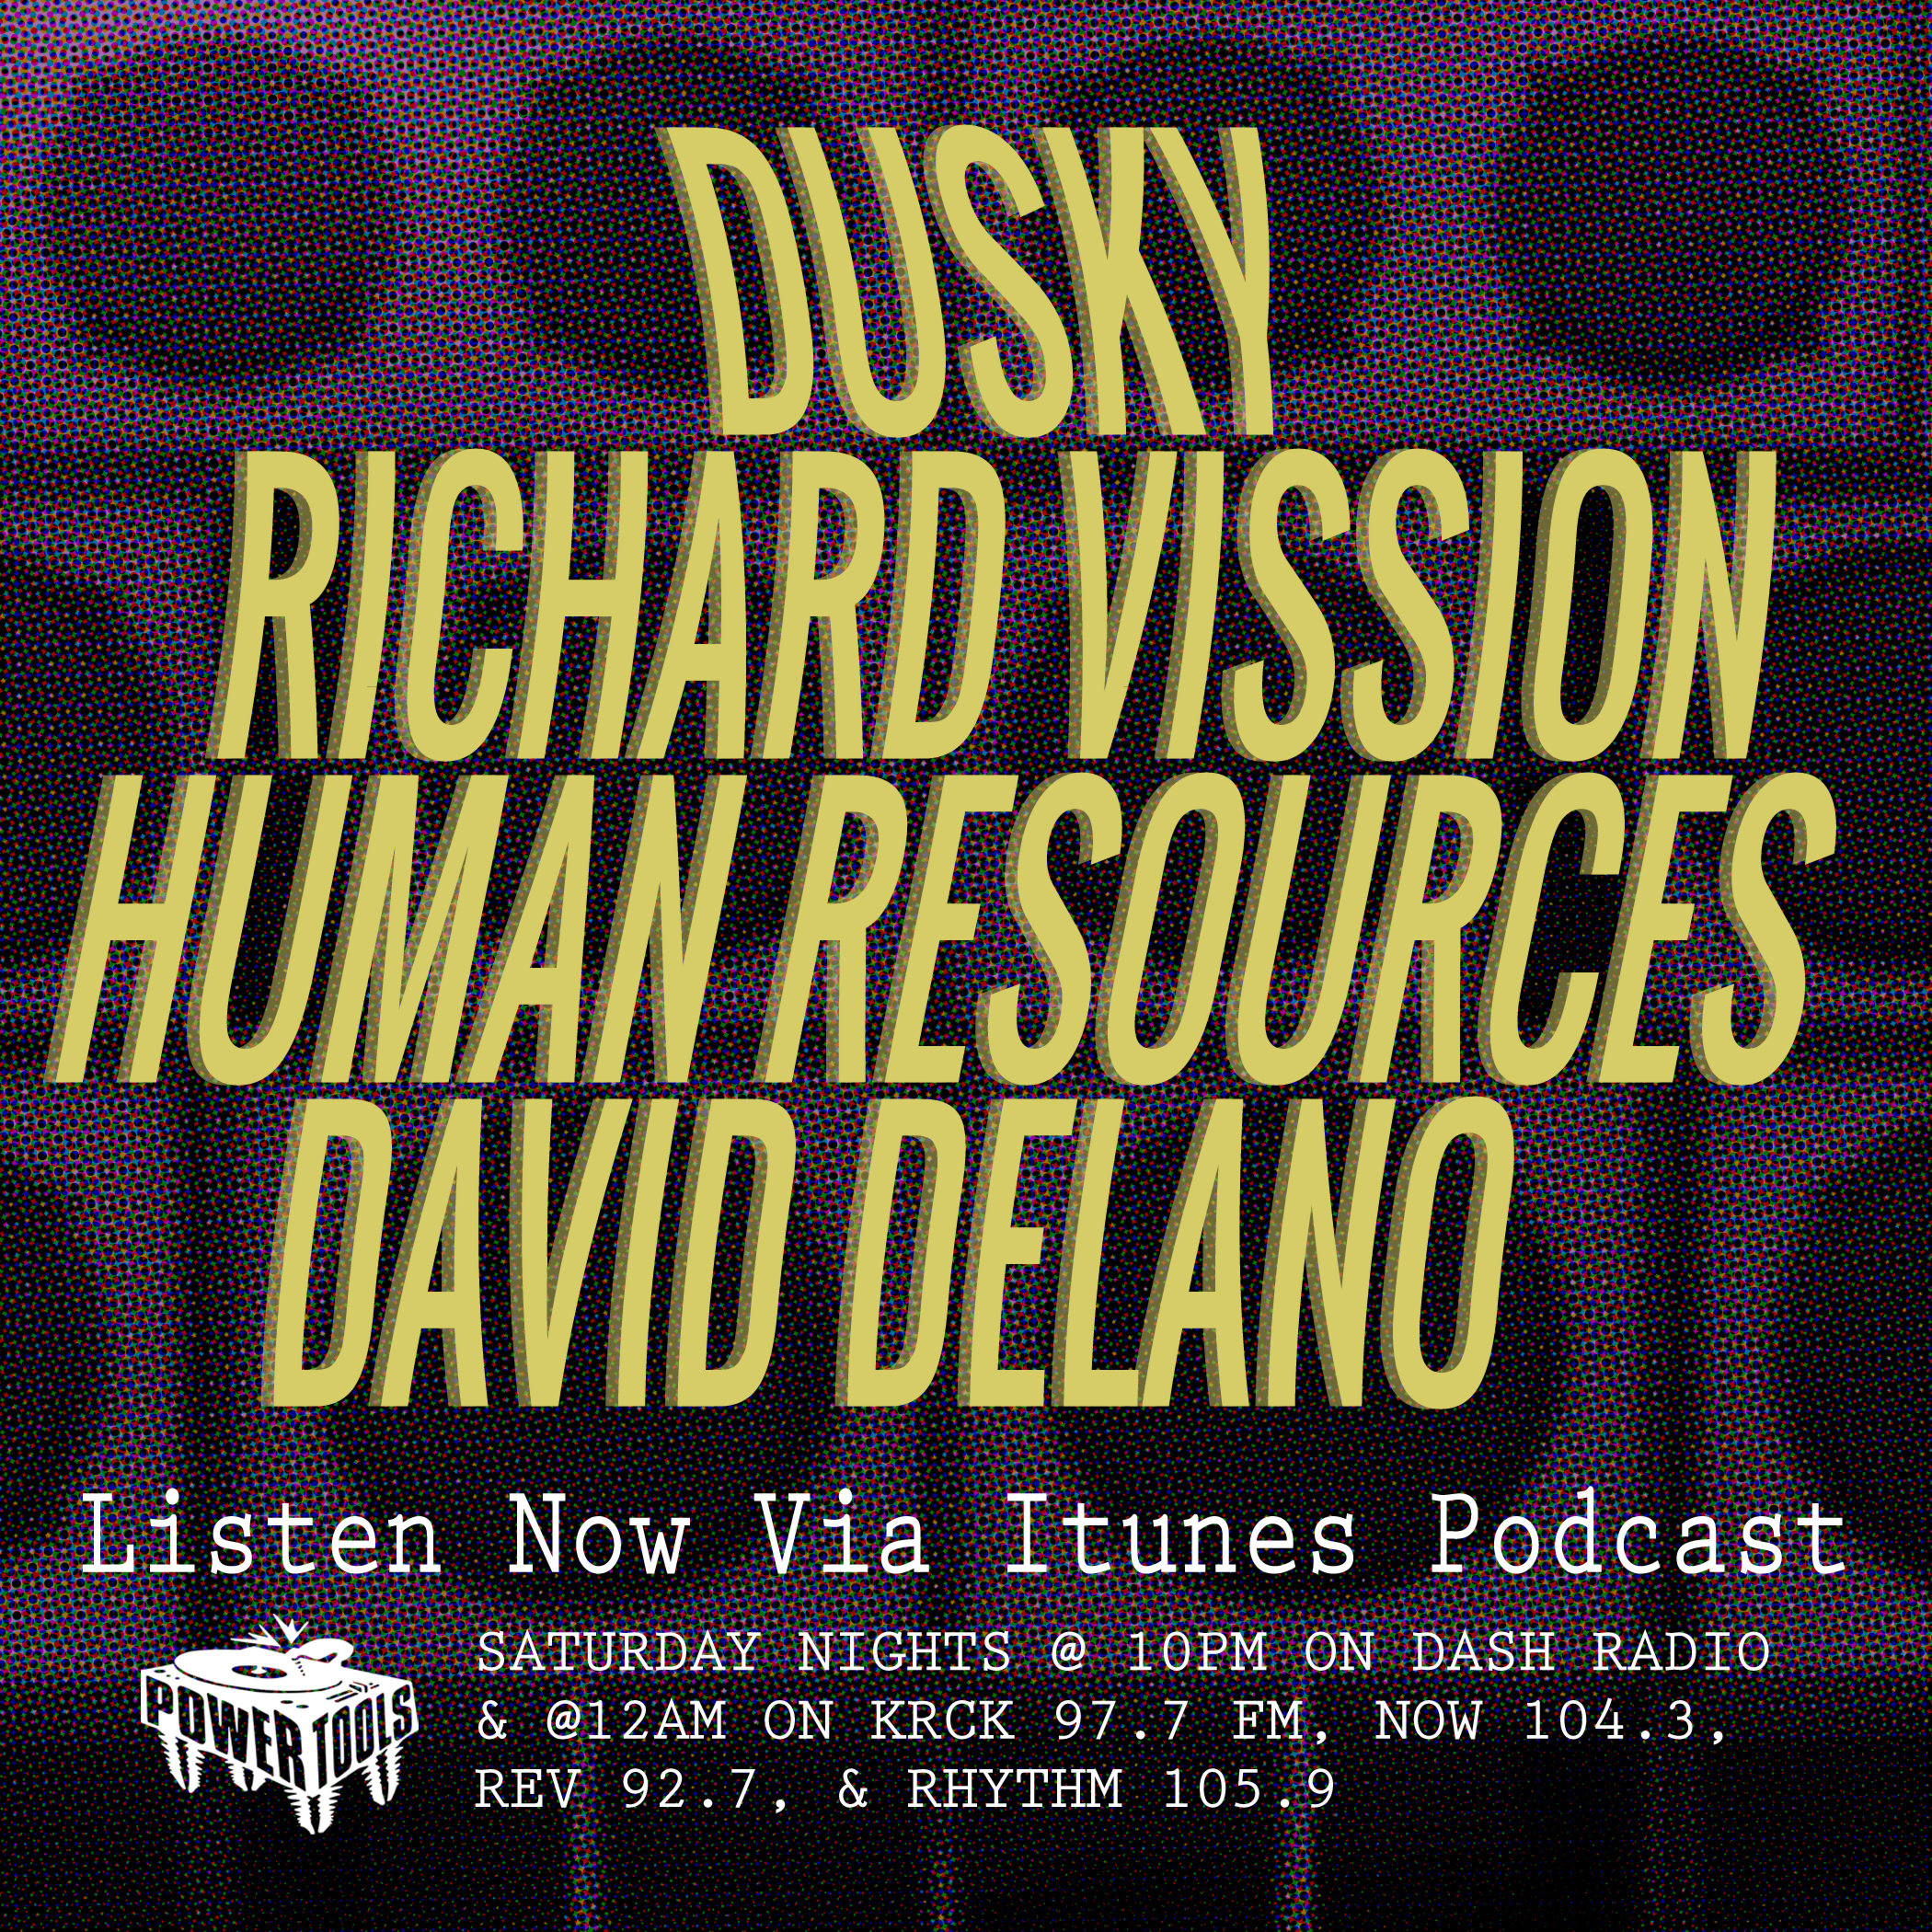 Episode 10-20-18 Ft: Dusky, Richard Vission, Human Resources